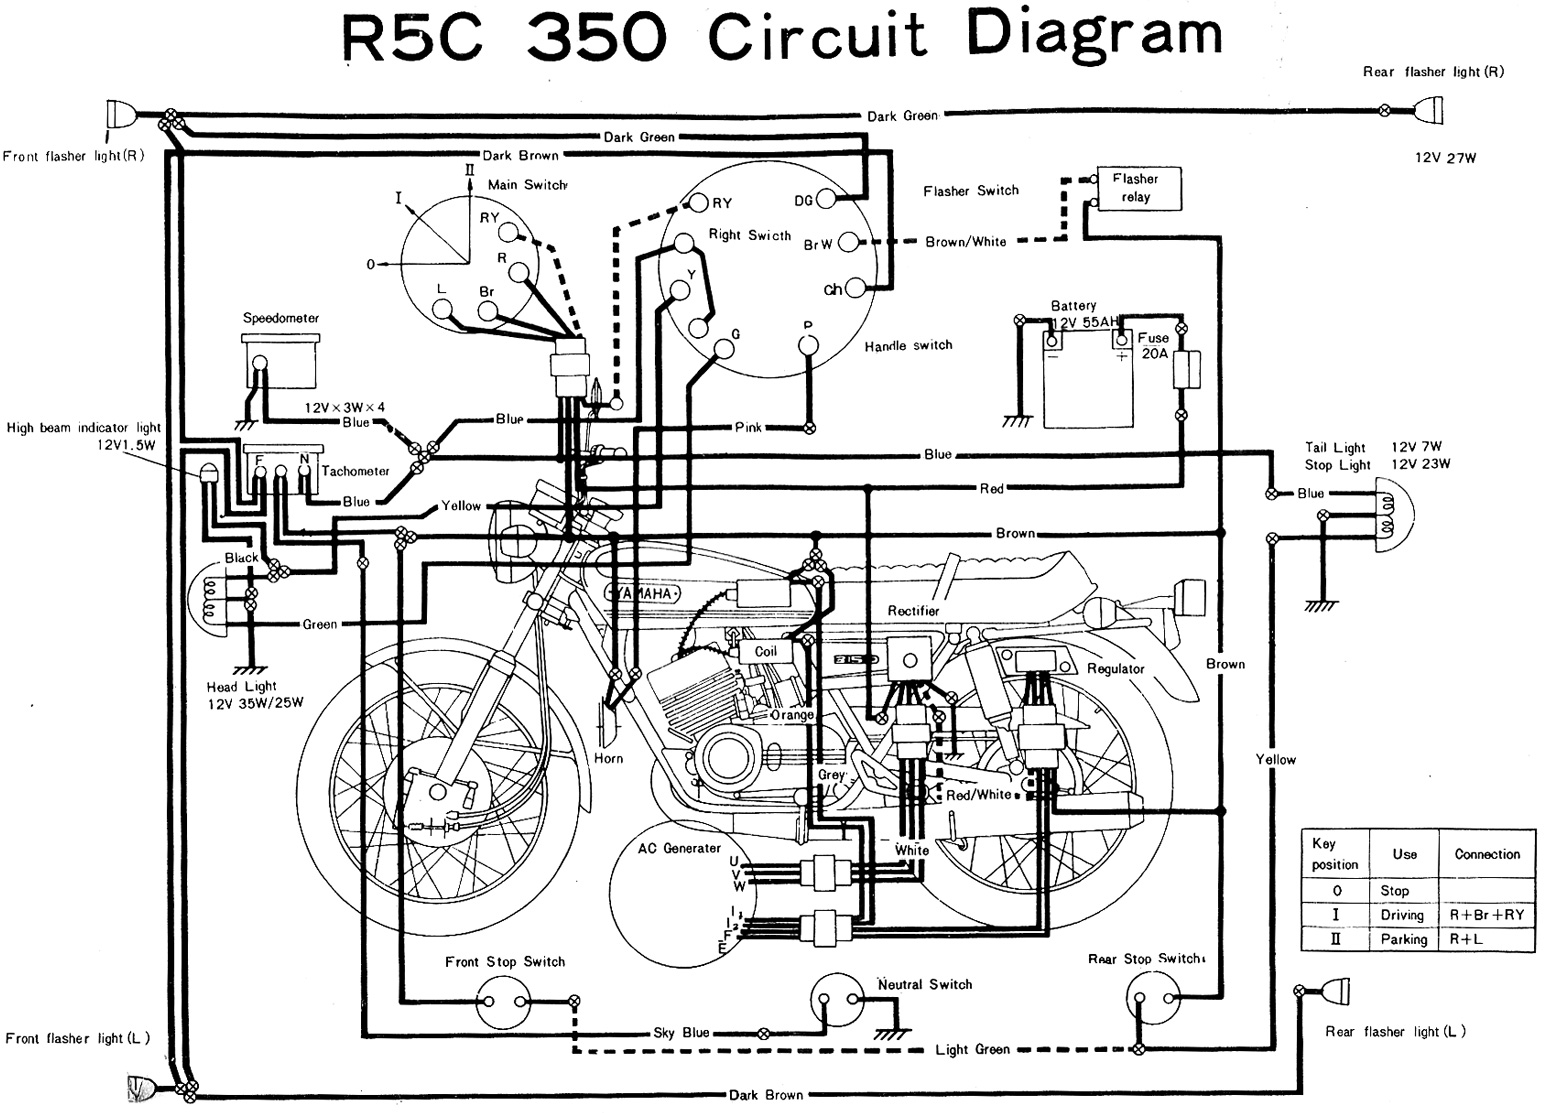 Strange Wiring Diagram For Motorcycle Wiring Diagram Database Wiring 101 Mecadwellnesstrialsorg